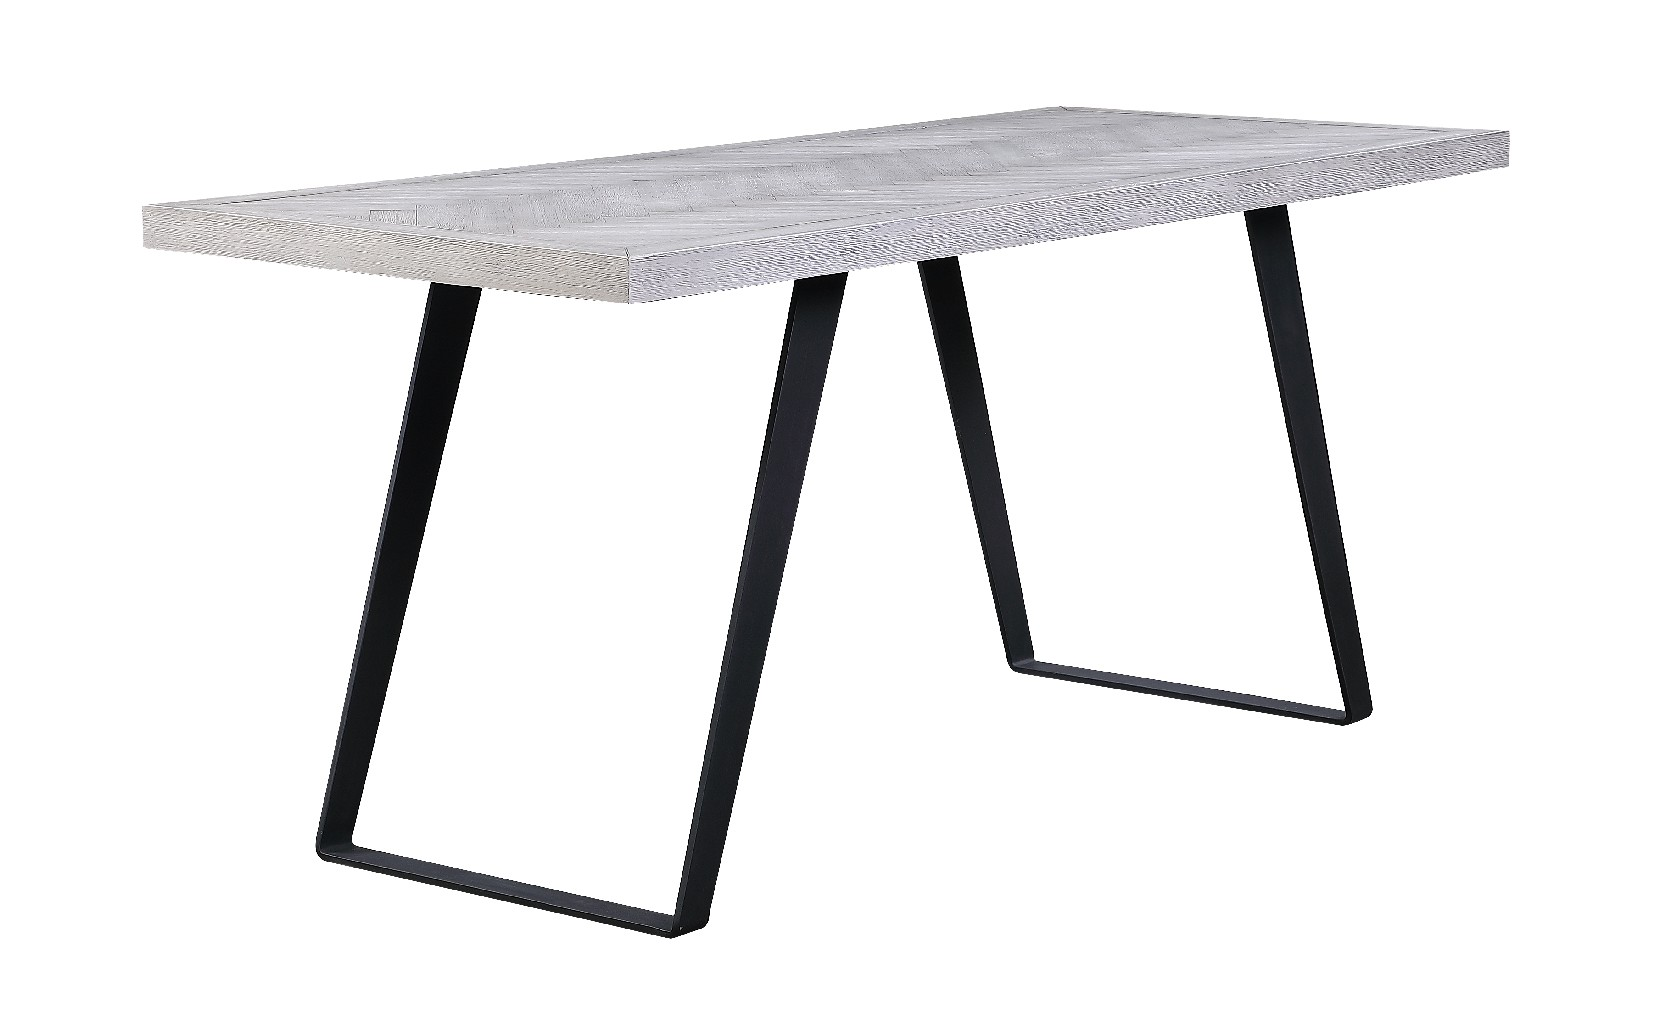 Aspen Court II Counter Height Dining Table - Coast to Coast Imports 48199